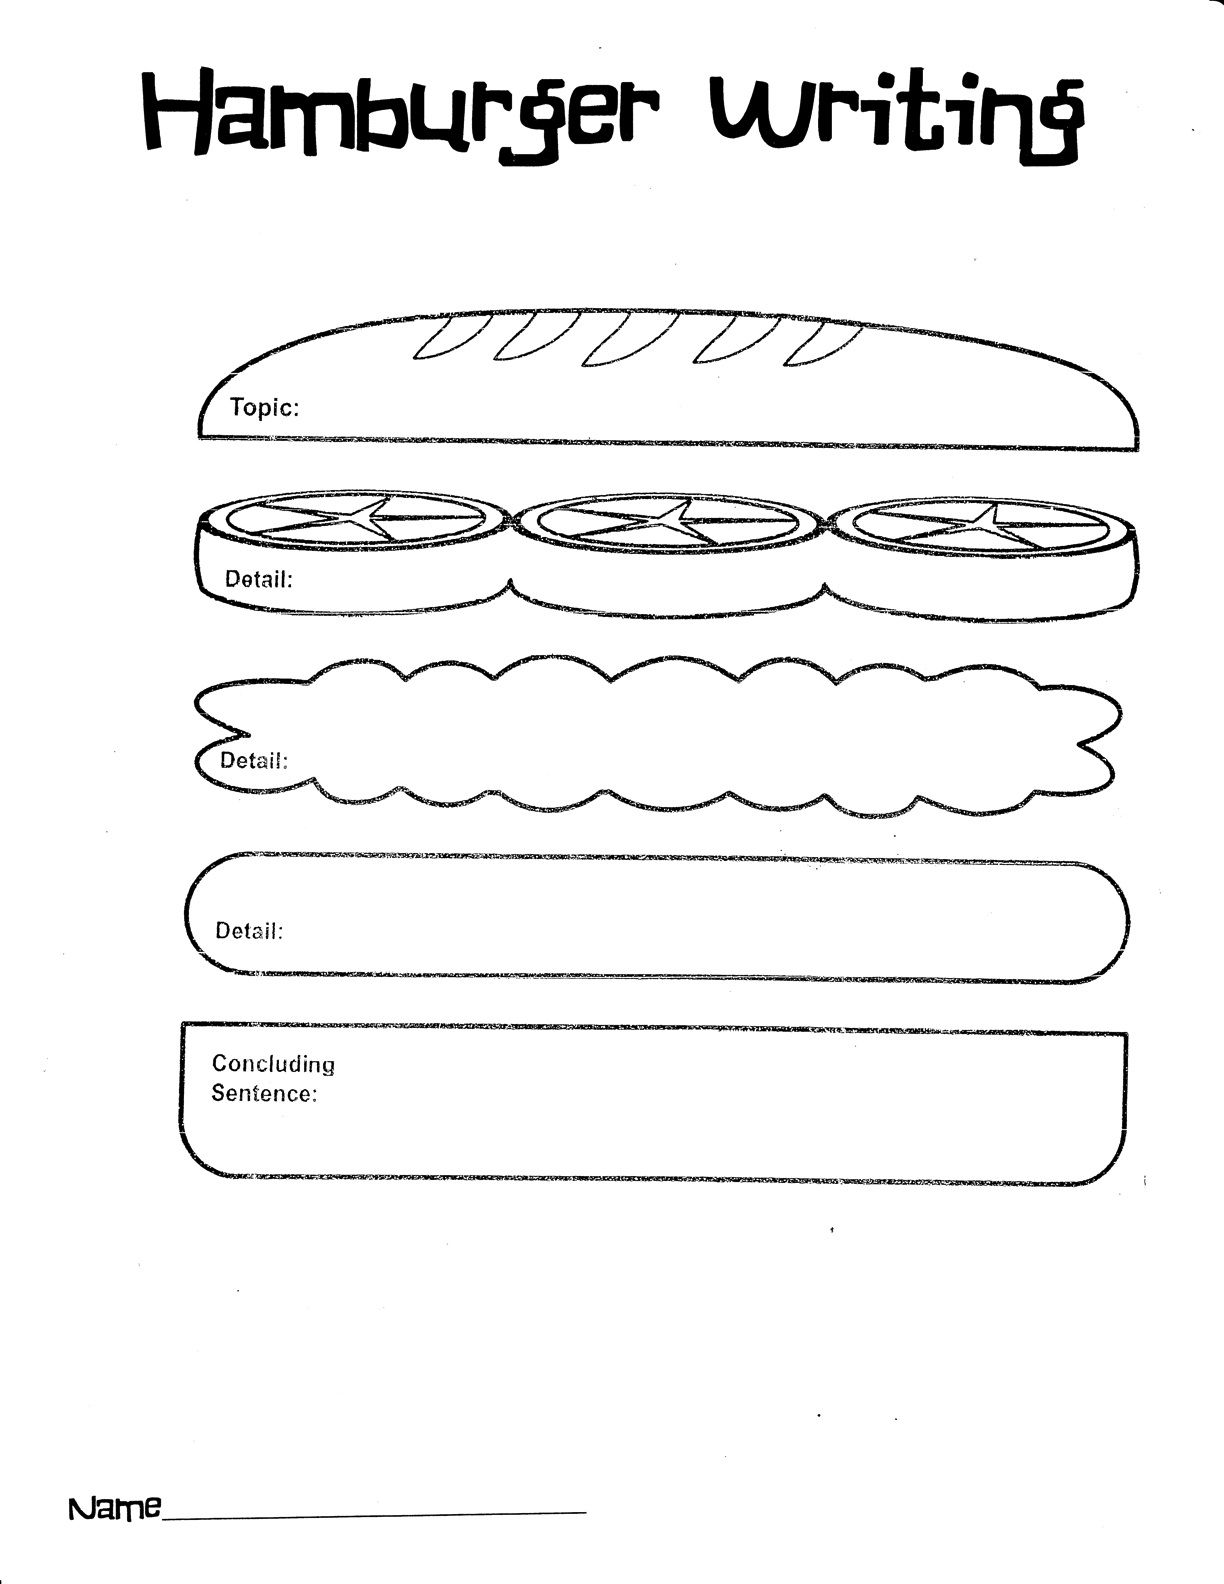 five paragraph essay hamburger The five-paragraph essay is a format of essay having five paragraphs: one  introductory paragraph, three body paragraphs with support and development,  and one concluding paragraph because of this structure, it is also known as a  hamburger essay, one three.